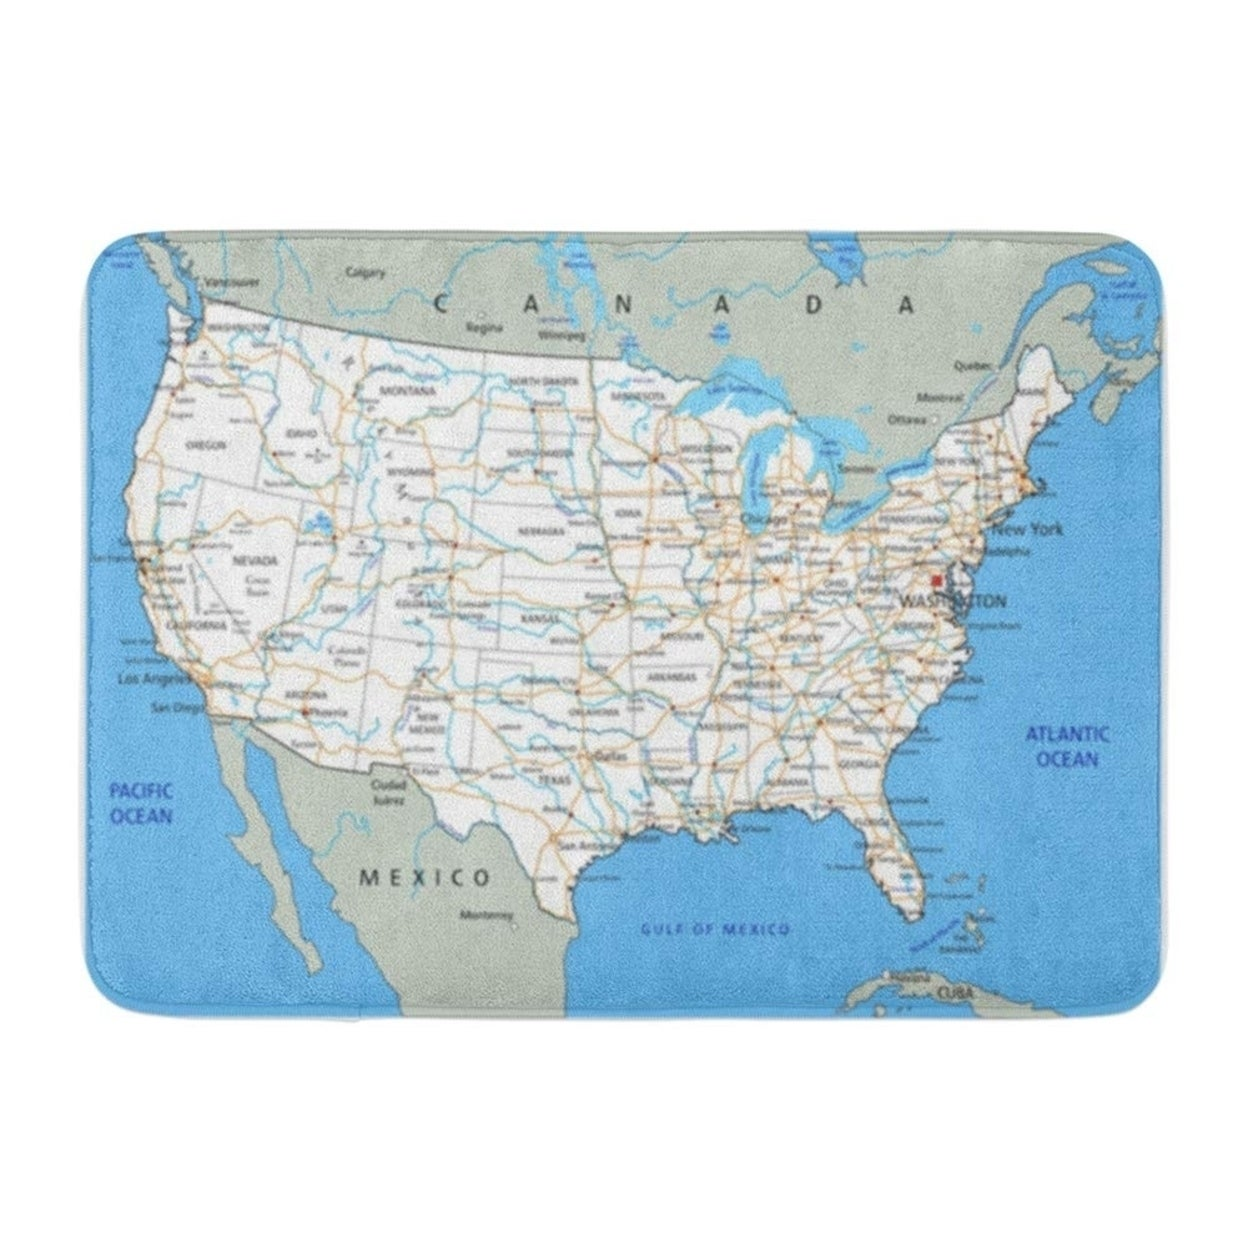 Shop Usa High Detailed United States Of America Road Map Labeling City Doormat Floor Rug Bath Mat 23 6x15 7 Inch Multi Overstock 31778603